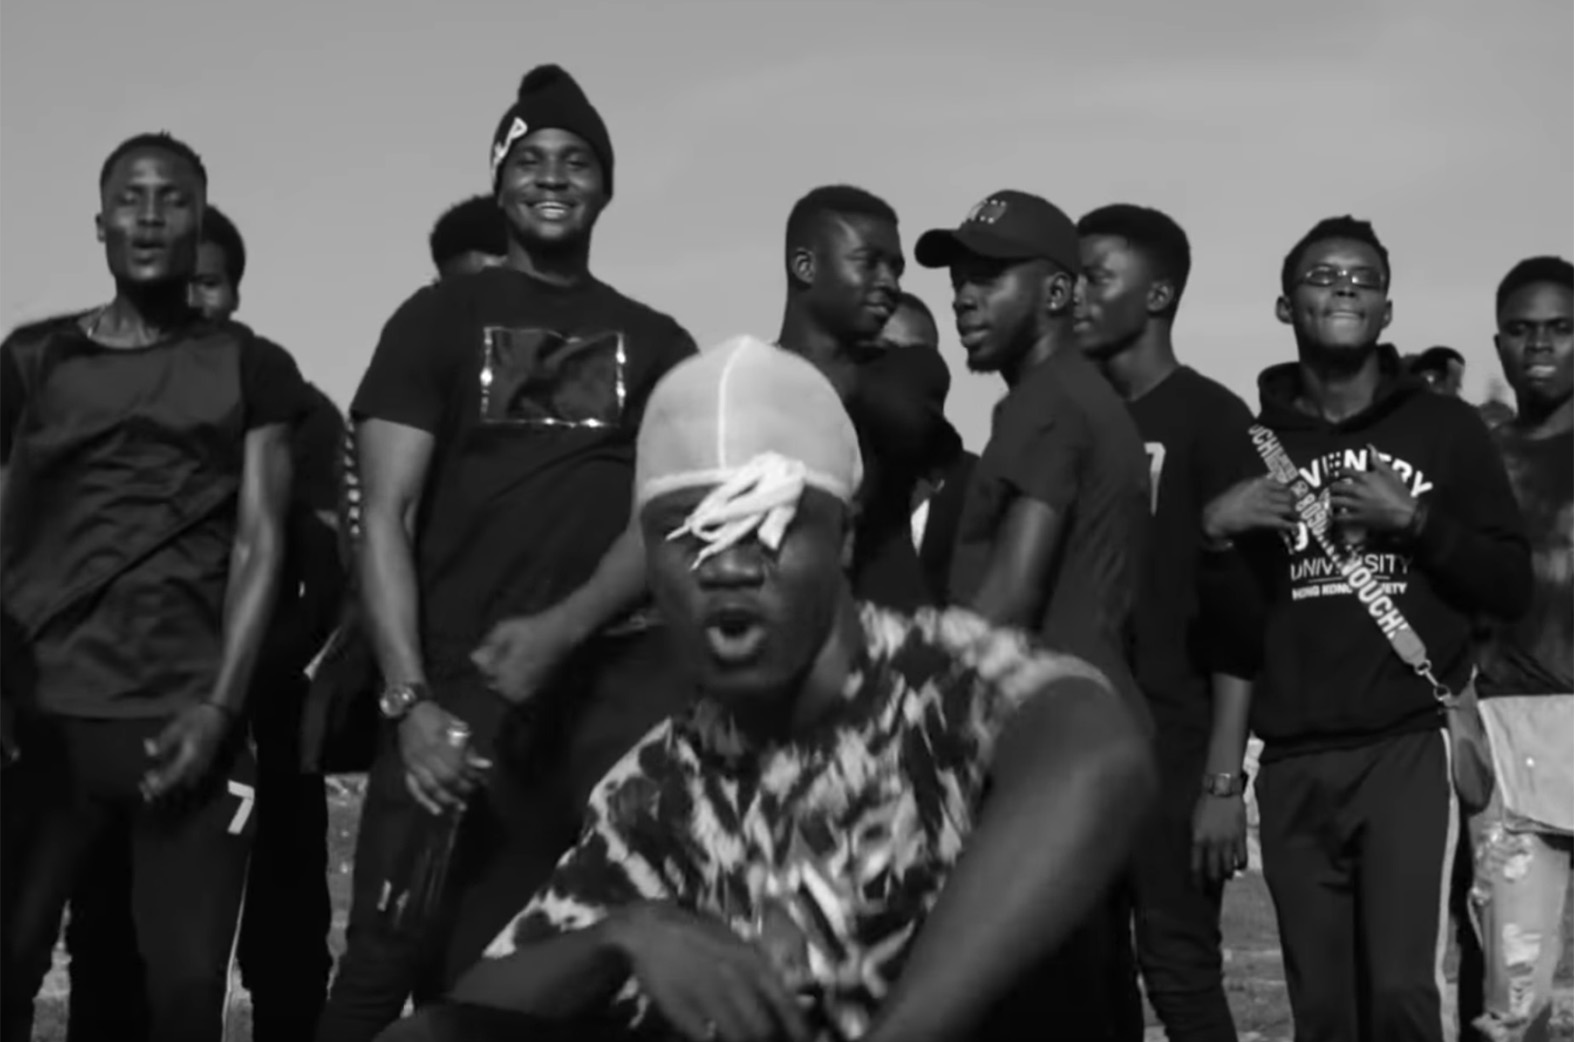 Video: Squaaad (Youth Empowerment Video) by Pambour feat. JayFyn